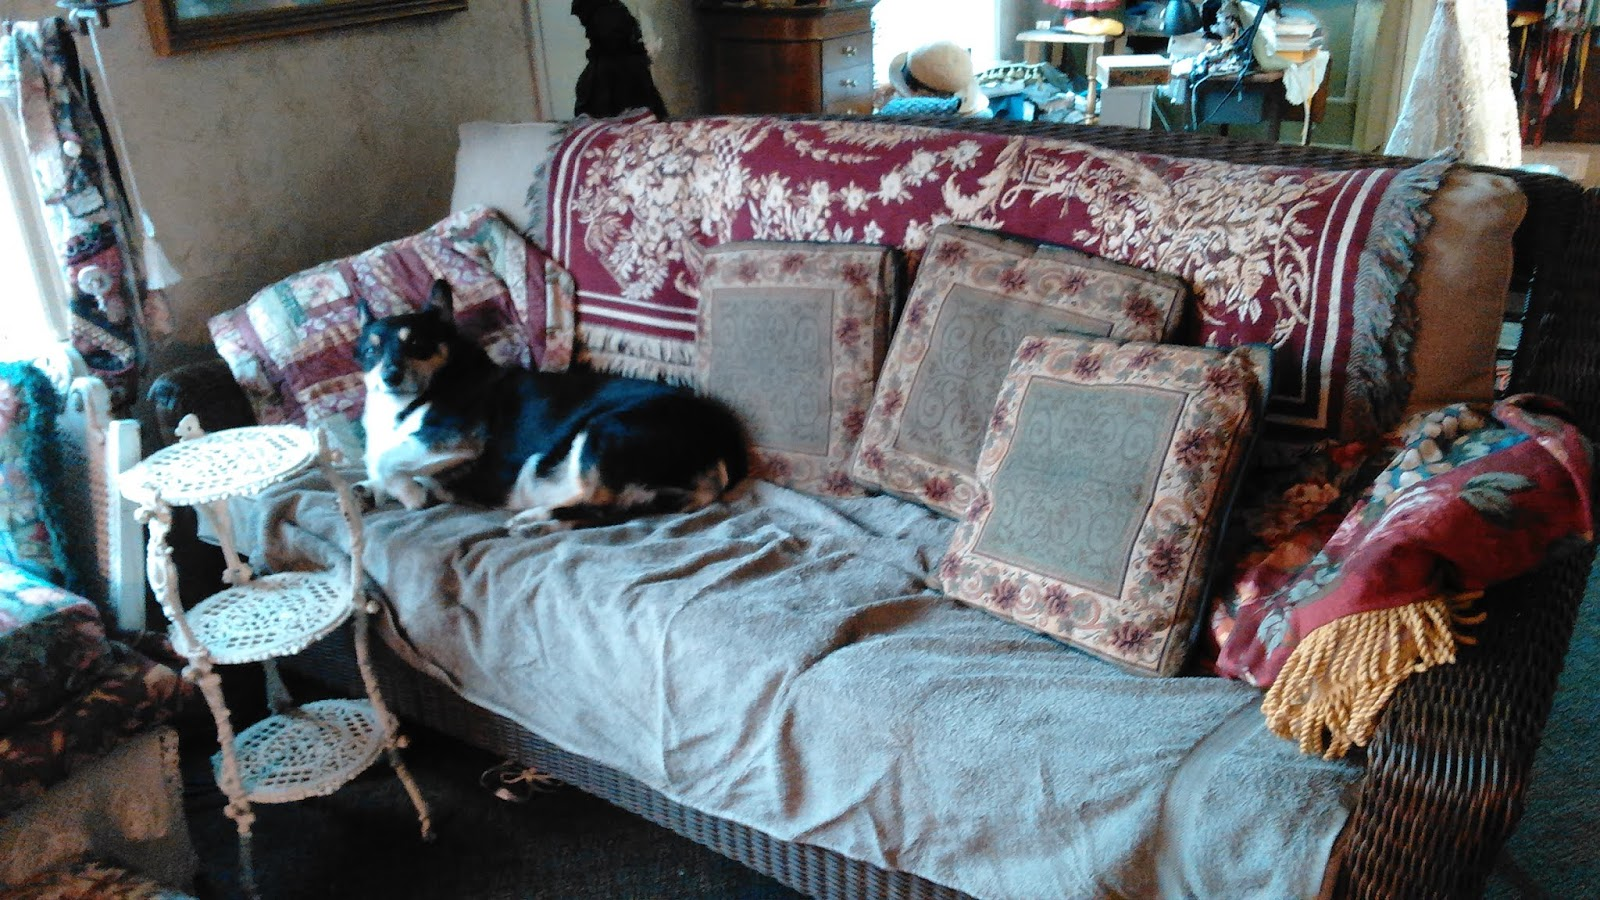 Remarkable Olderrose Tough Being The Only Dog Bralicious Painted Fabric Chair Ideas Braliciousco